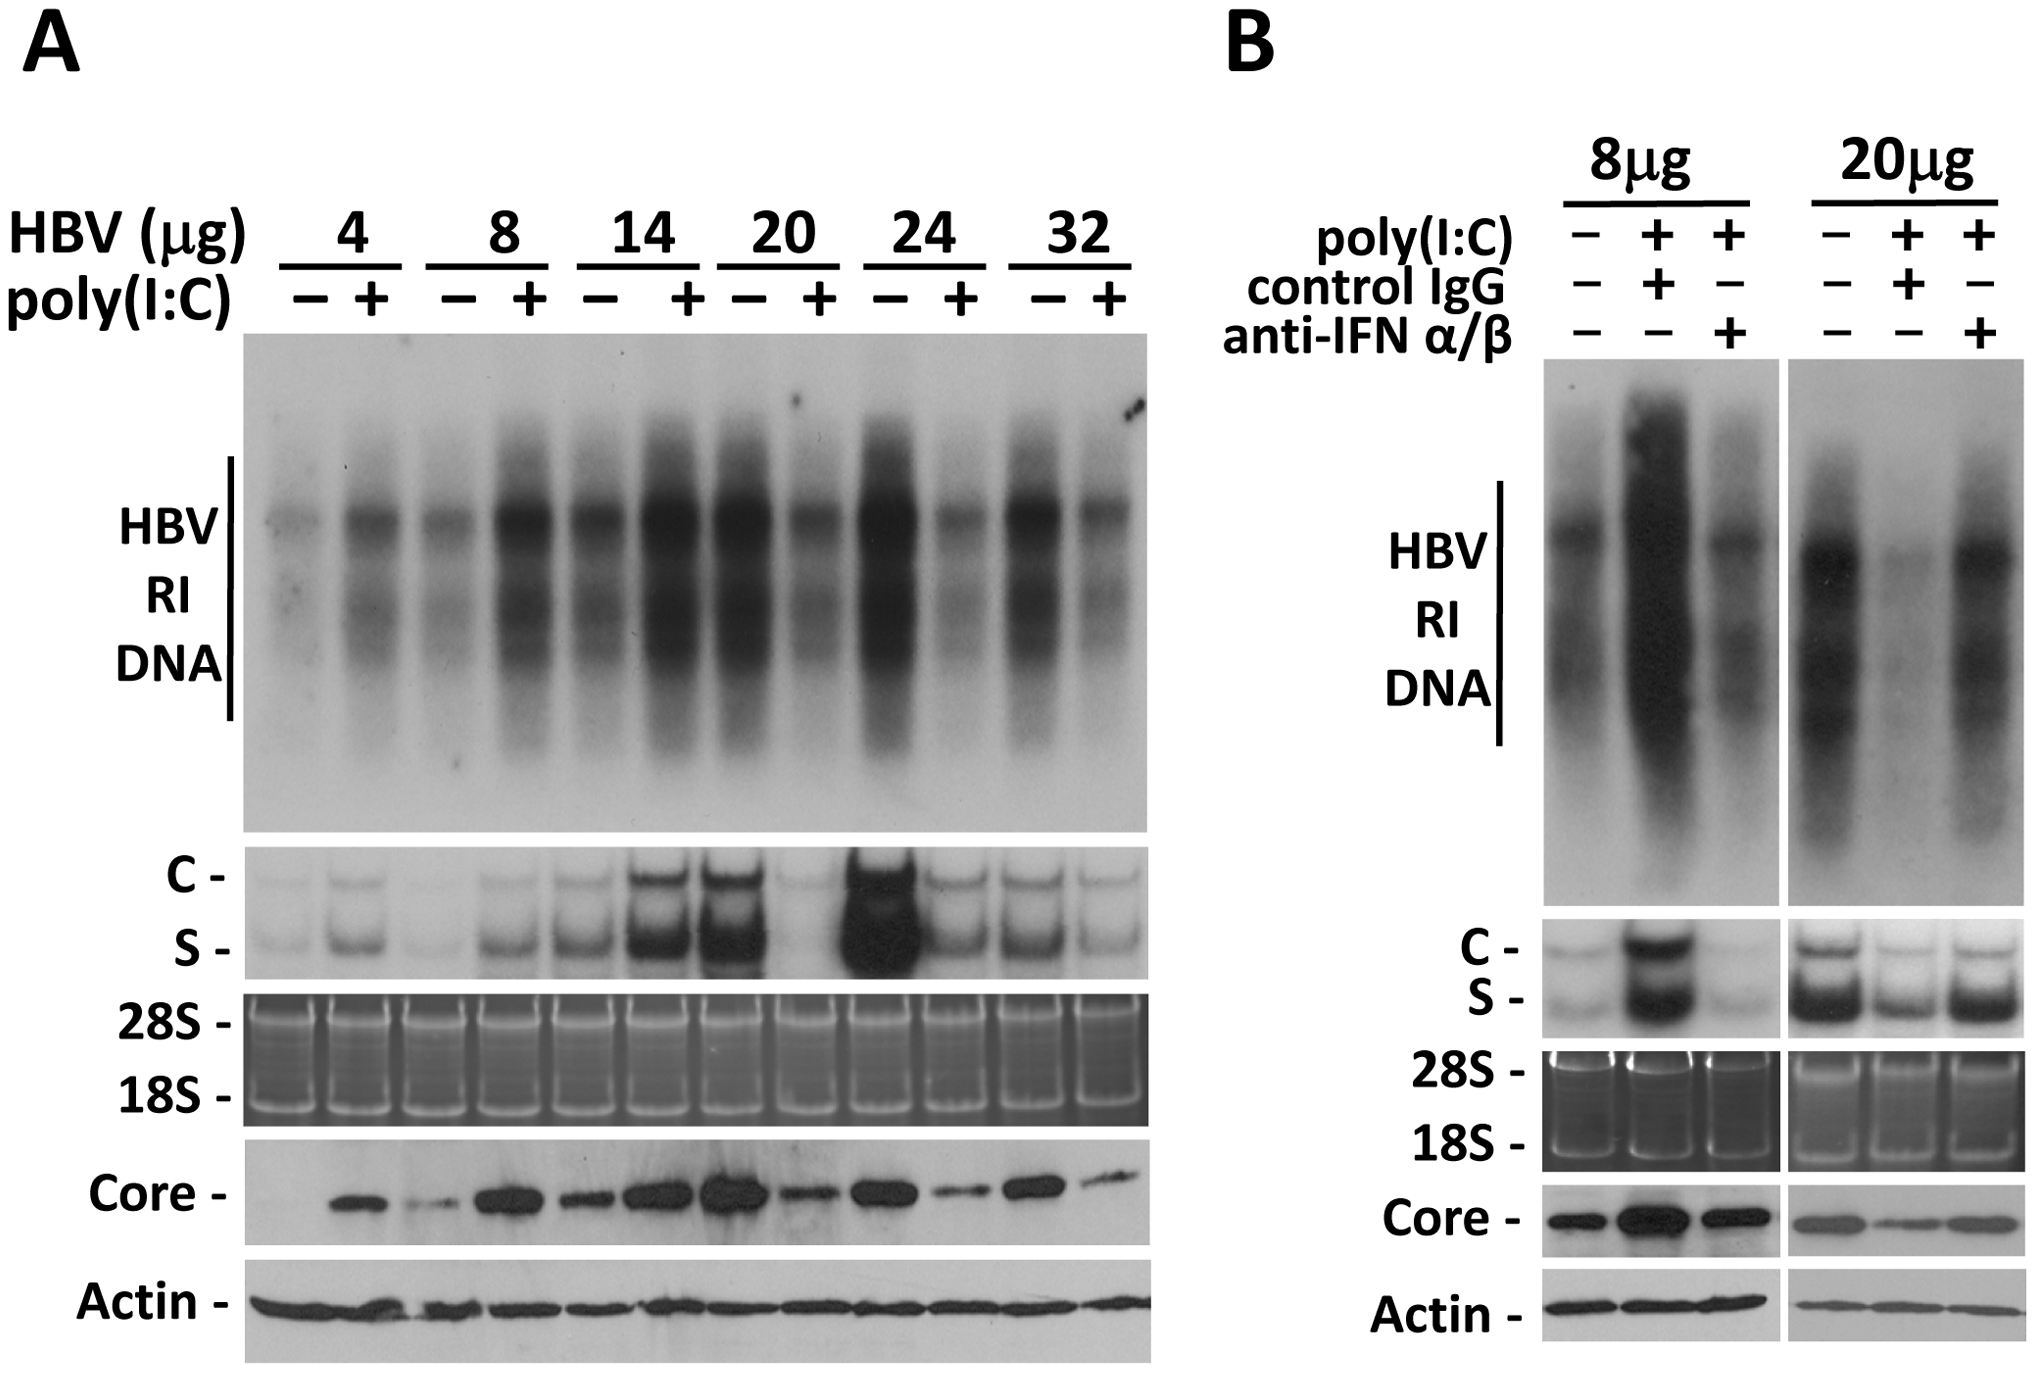 Viral load-dependent effect of IFN- α/β on HBV in mice.